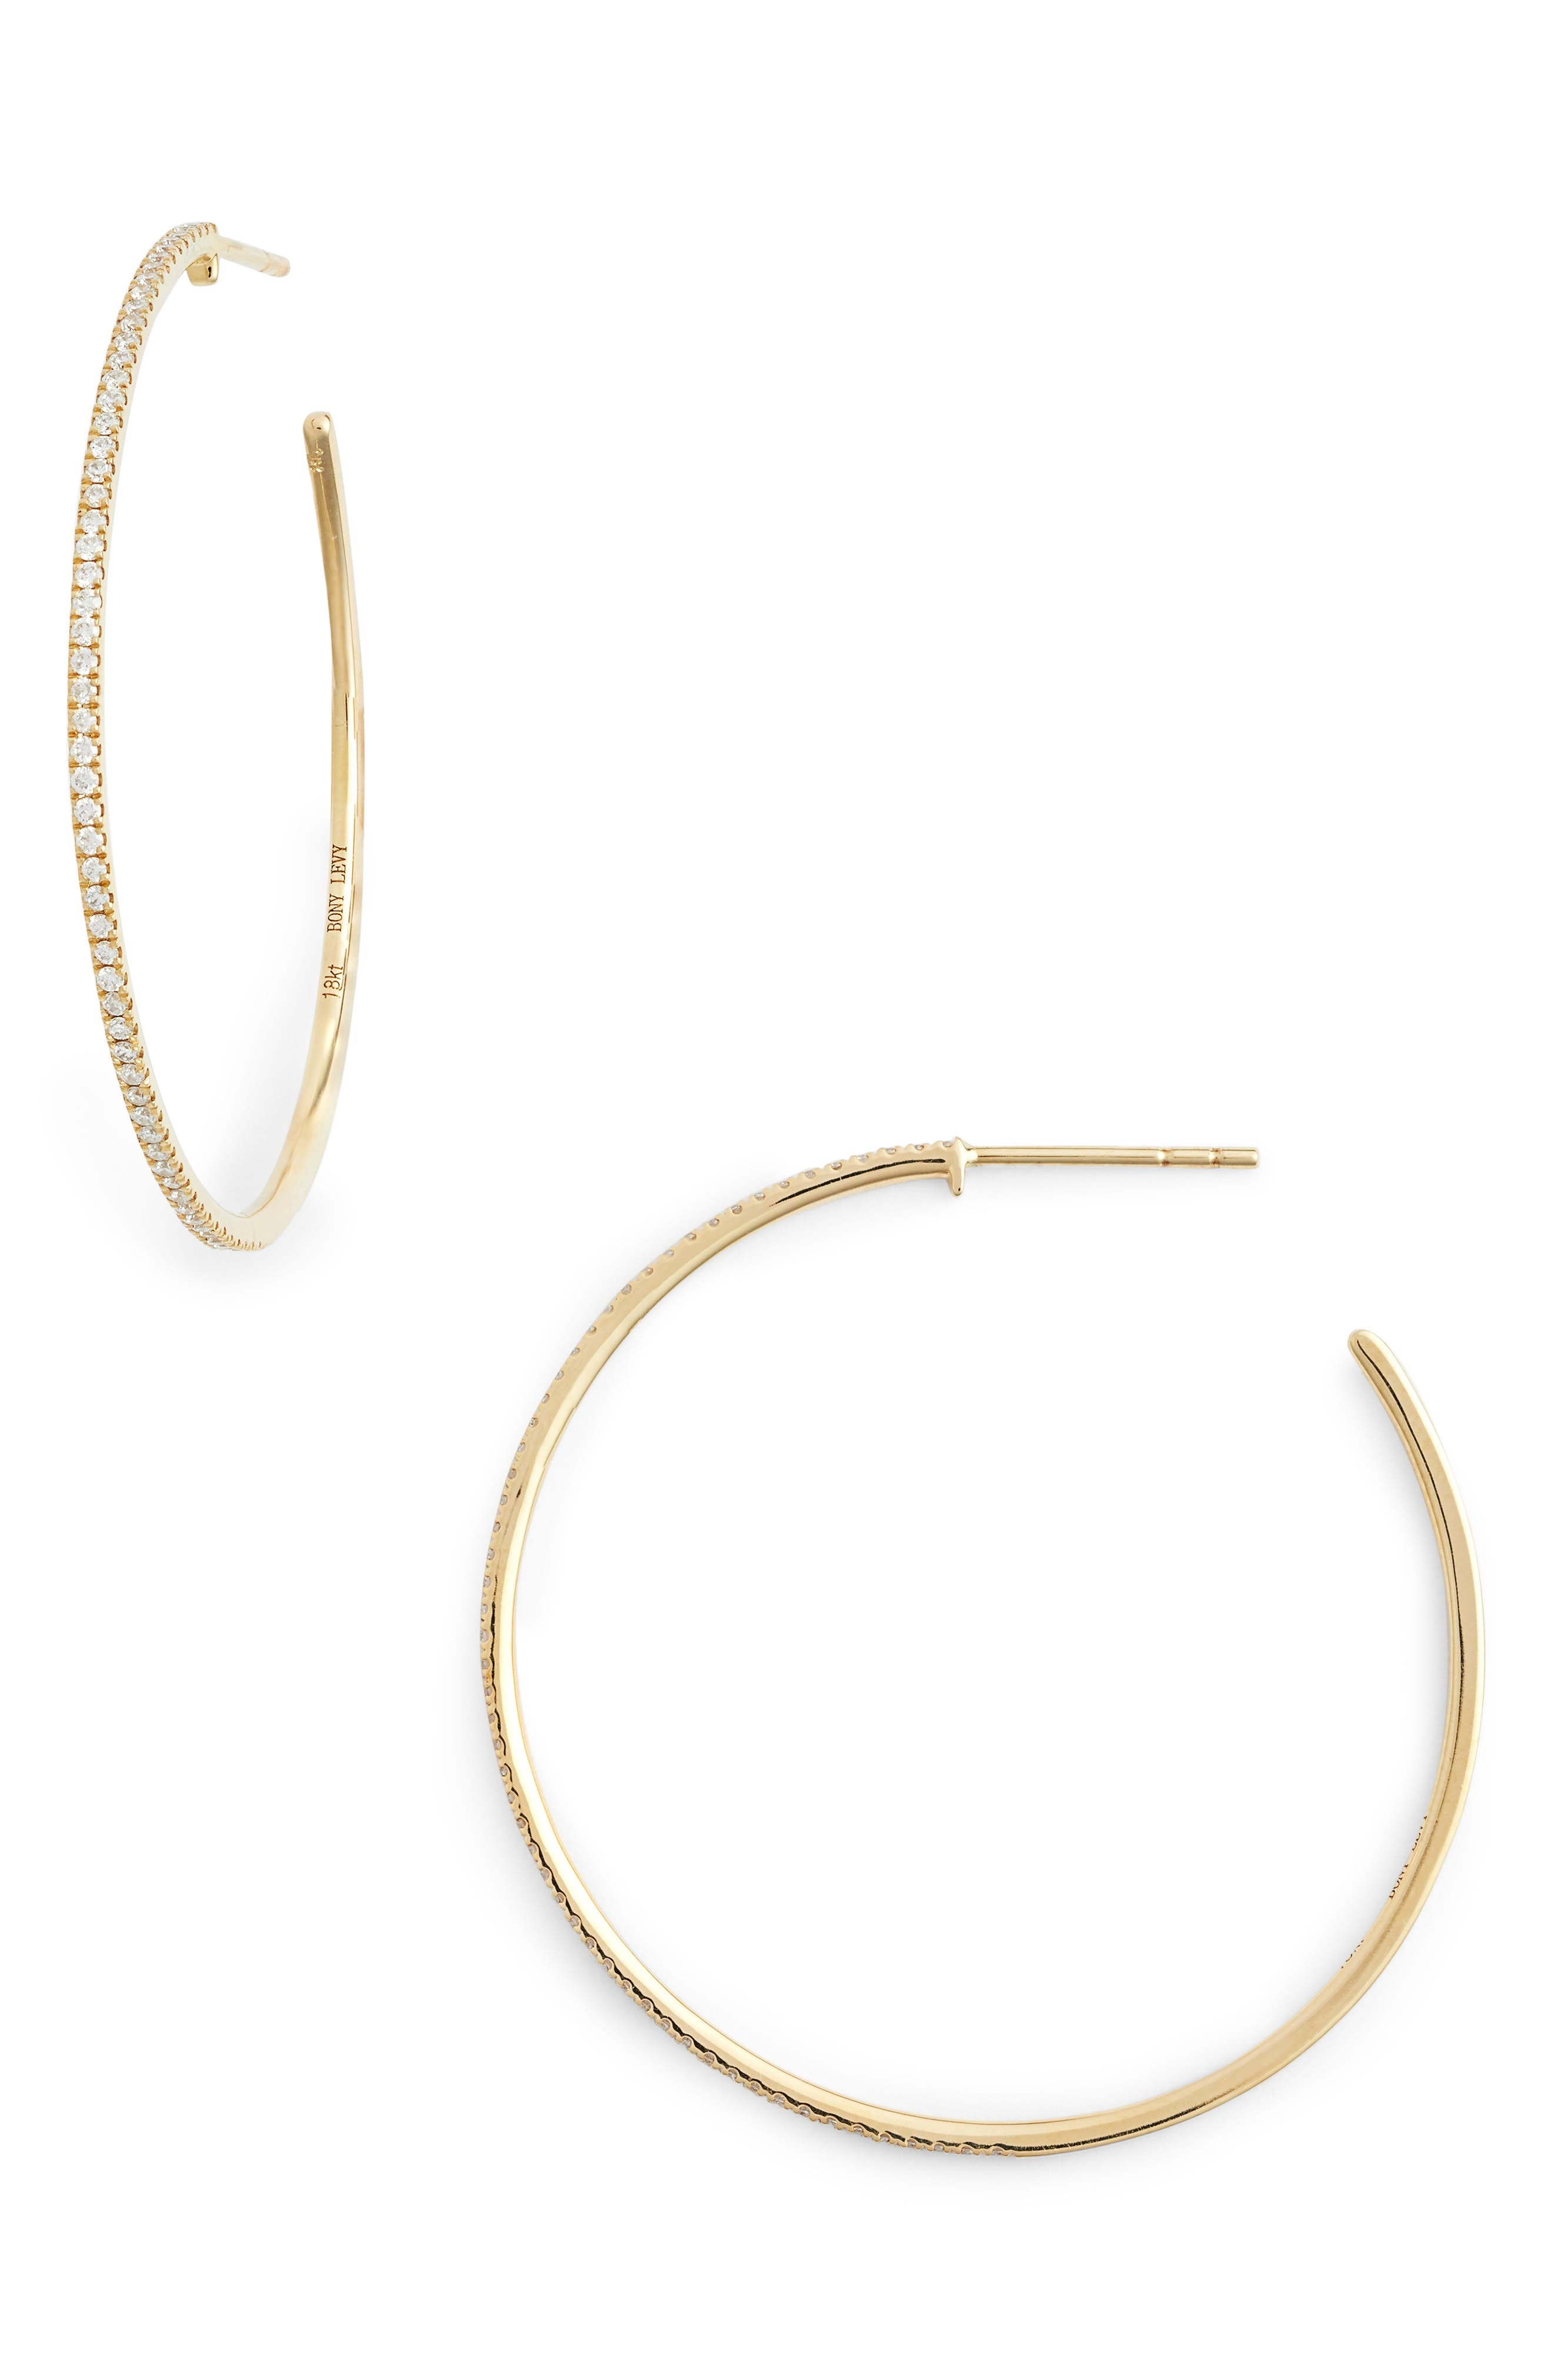 BONY LEVY, Large Diamond Hoop Earrings, Main thumbnail 1, color, YELLOW GOLD